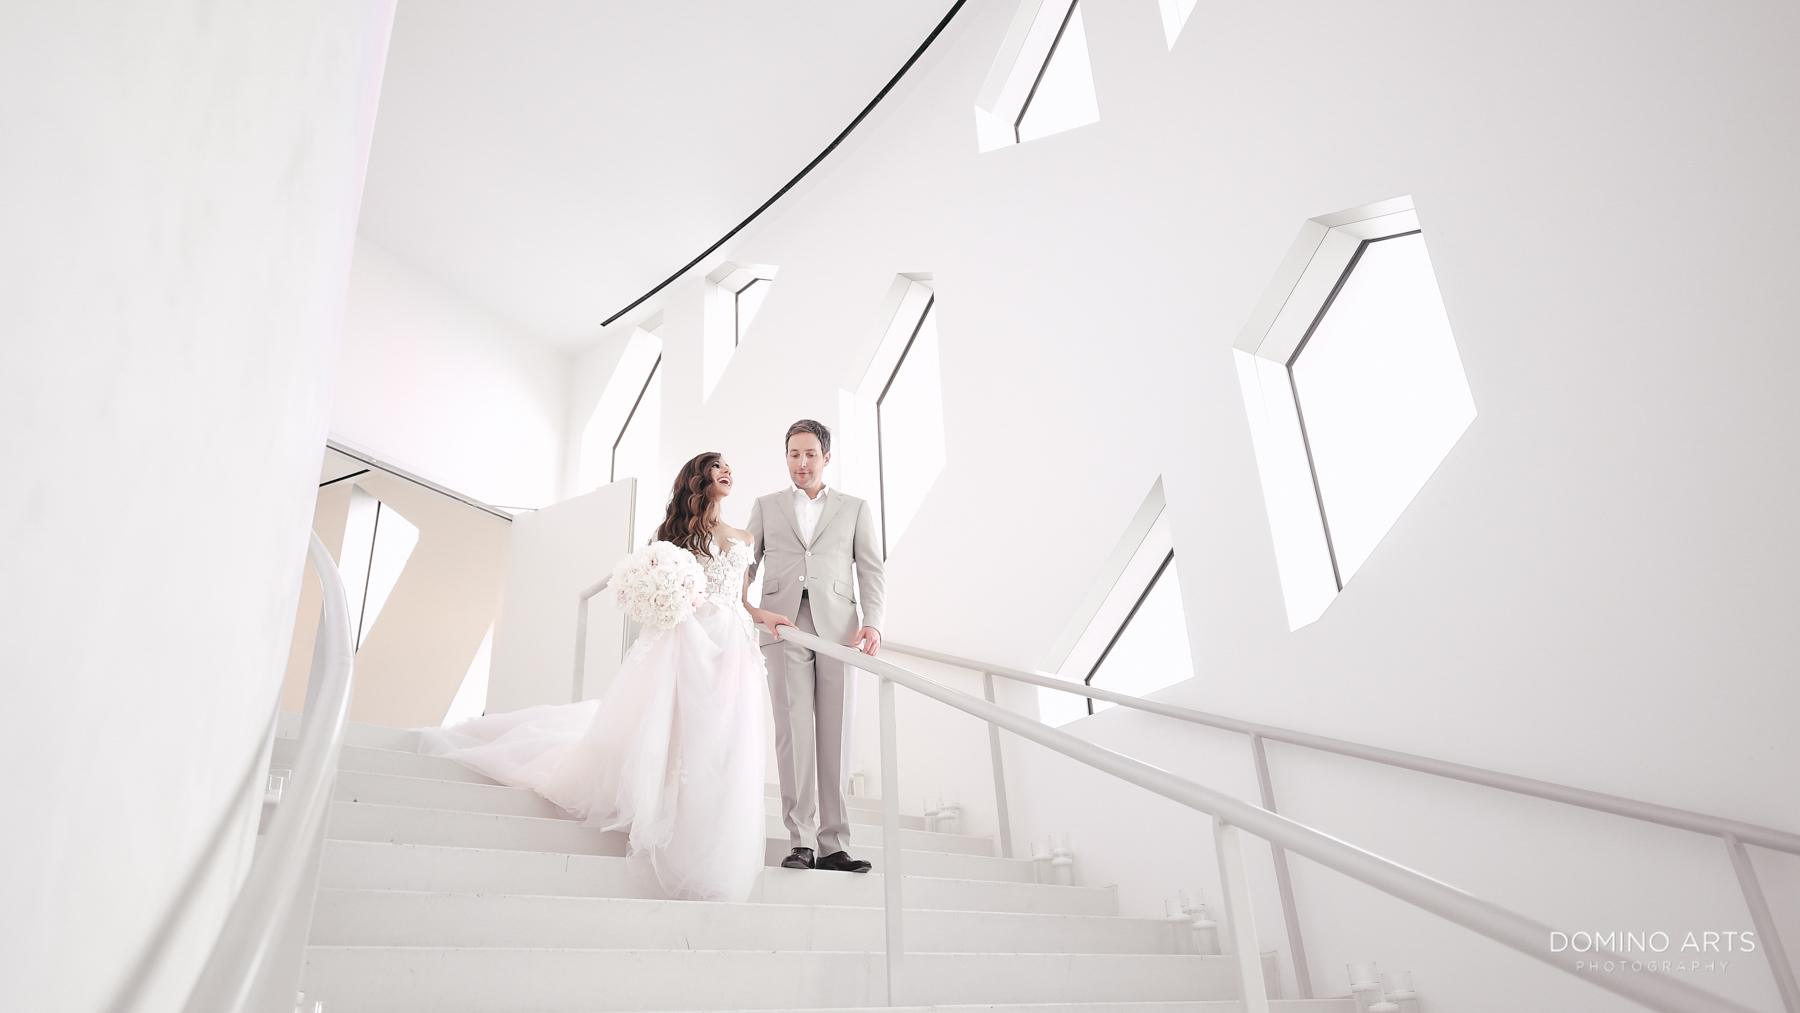 Romantic wedding photos at Faena Hotel